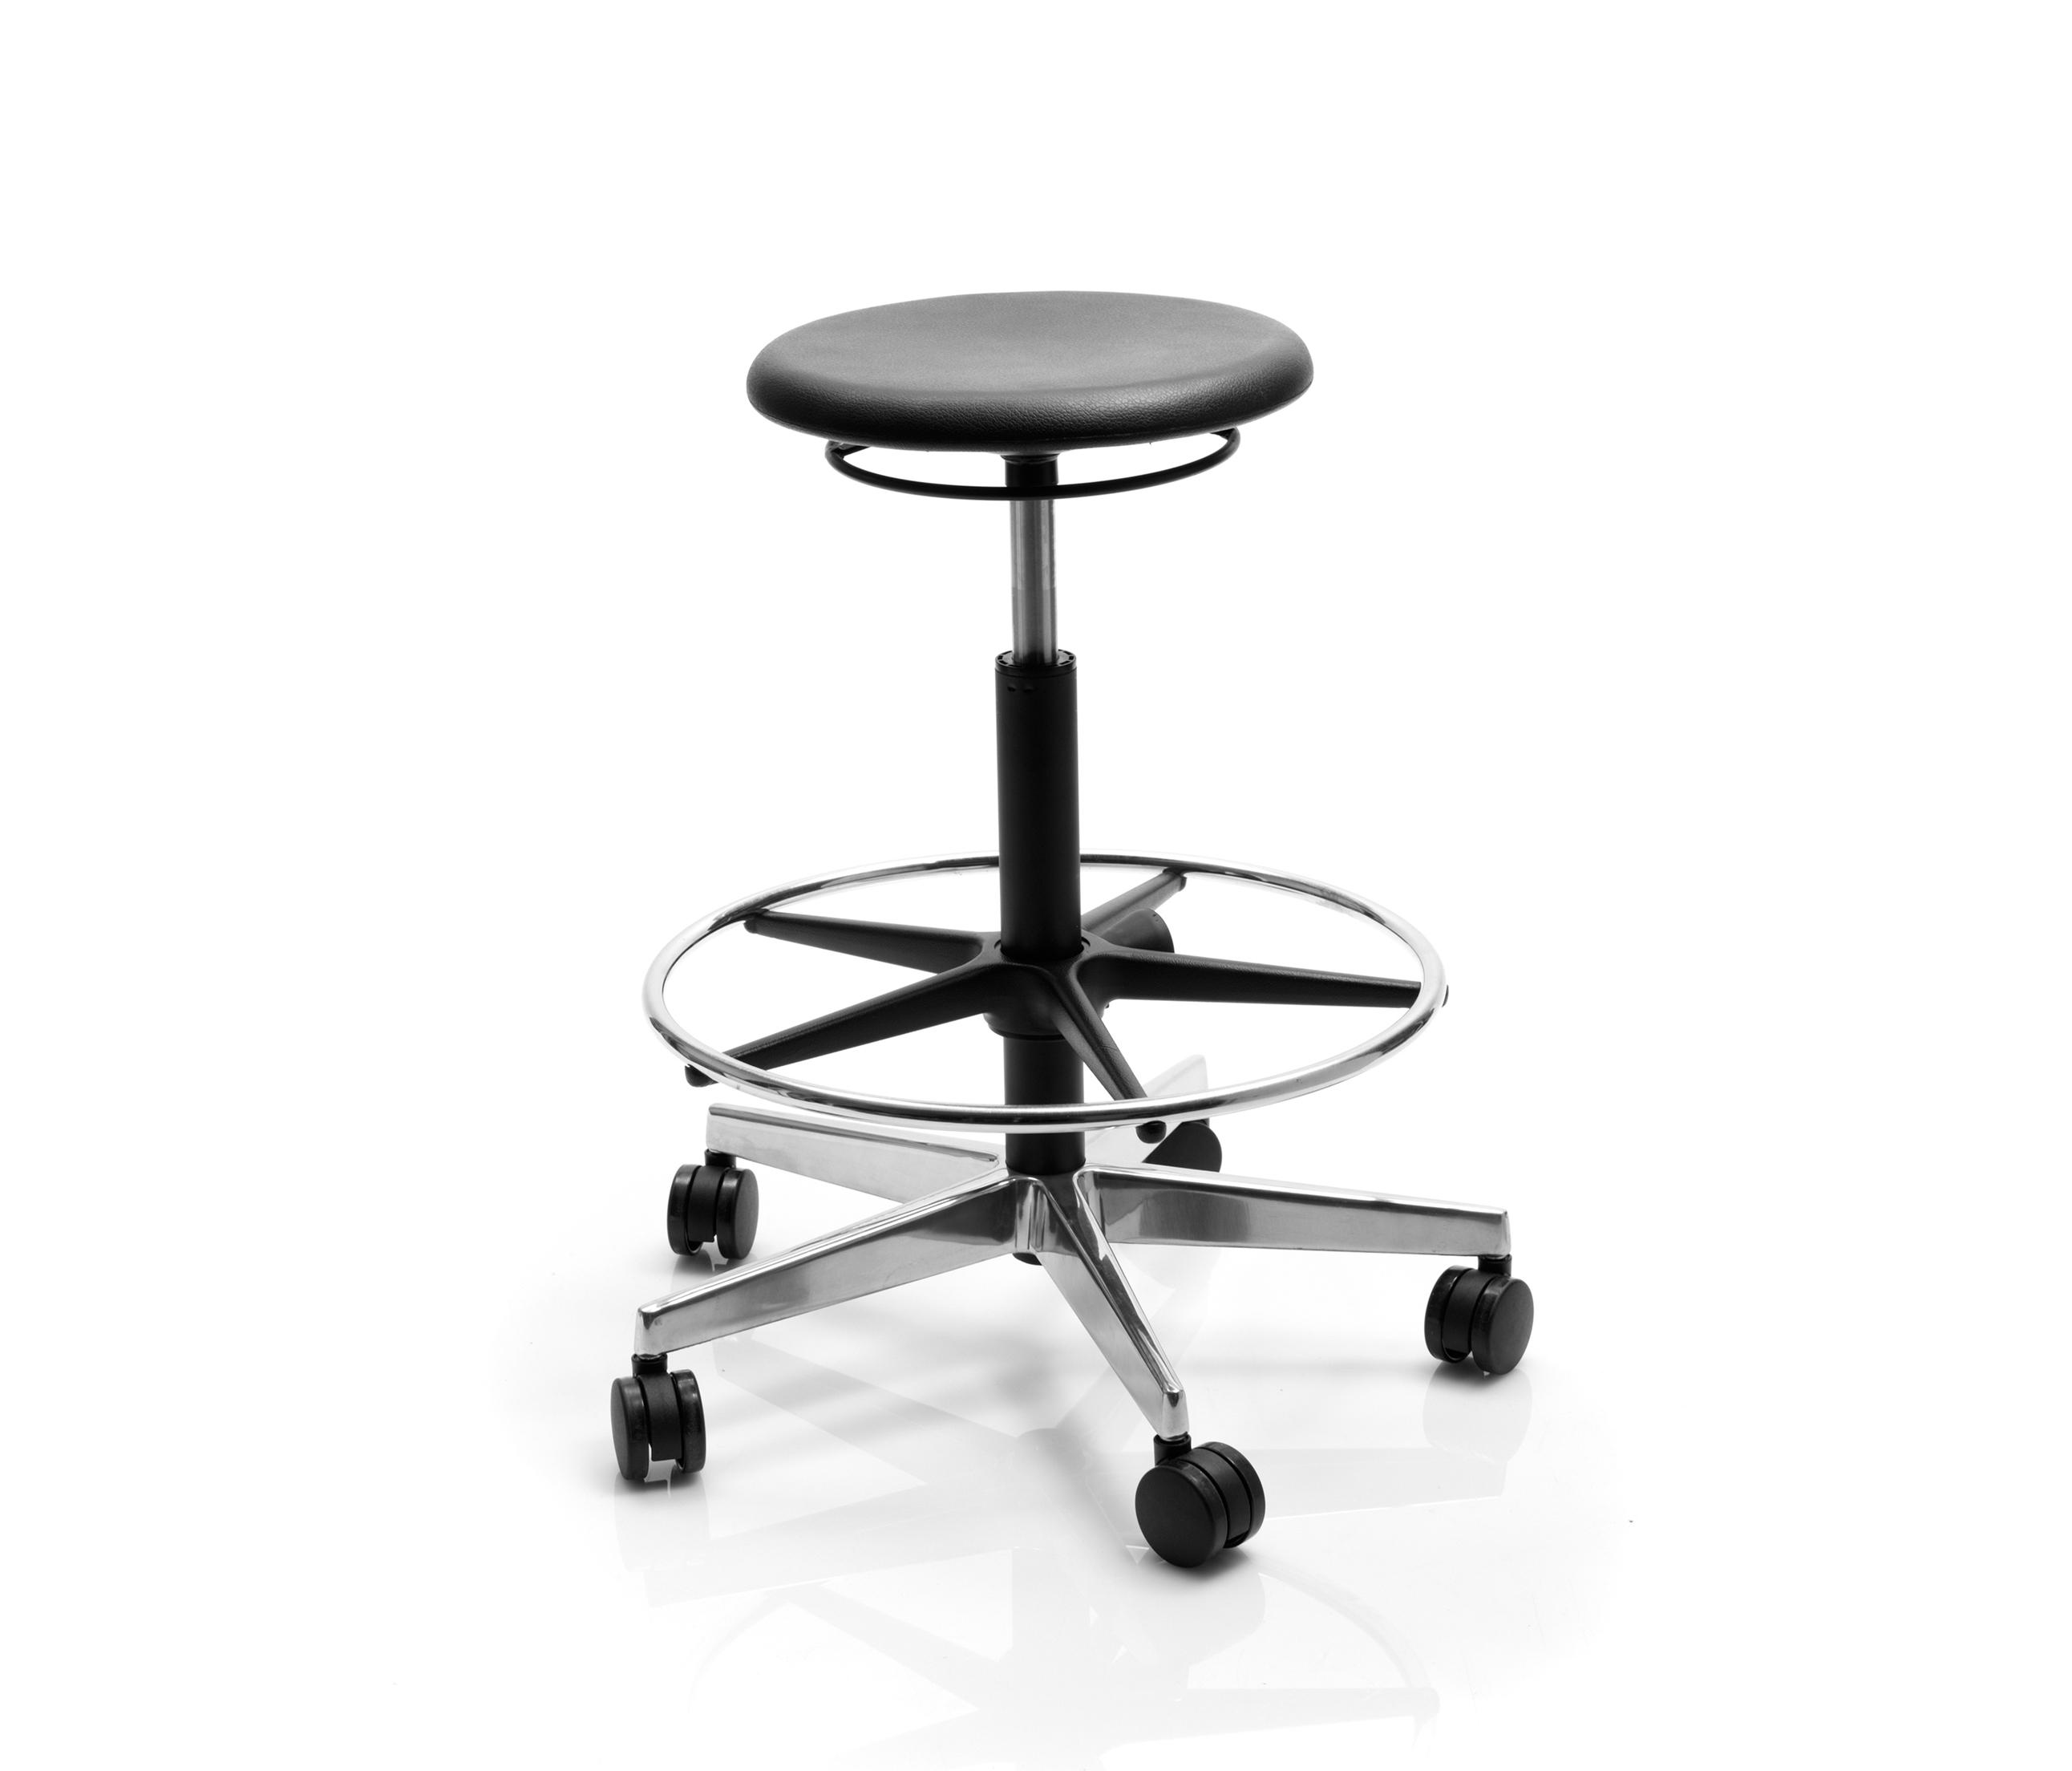 SWIVEL STOOLS WITHOUT BACKREST High quality designer SWIVEL